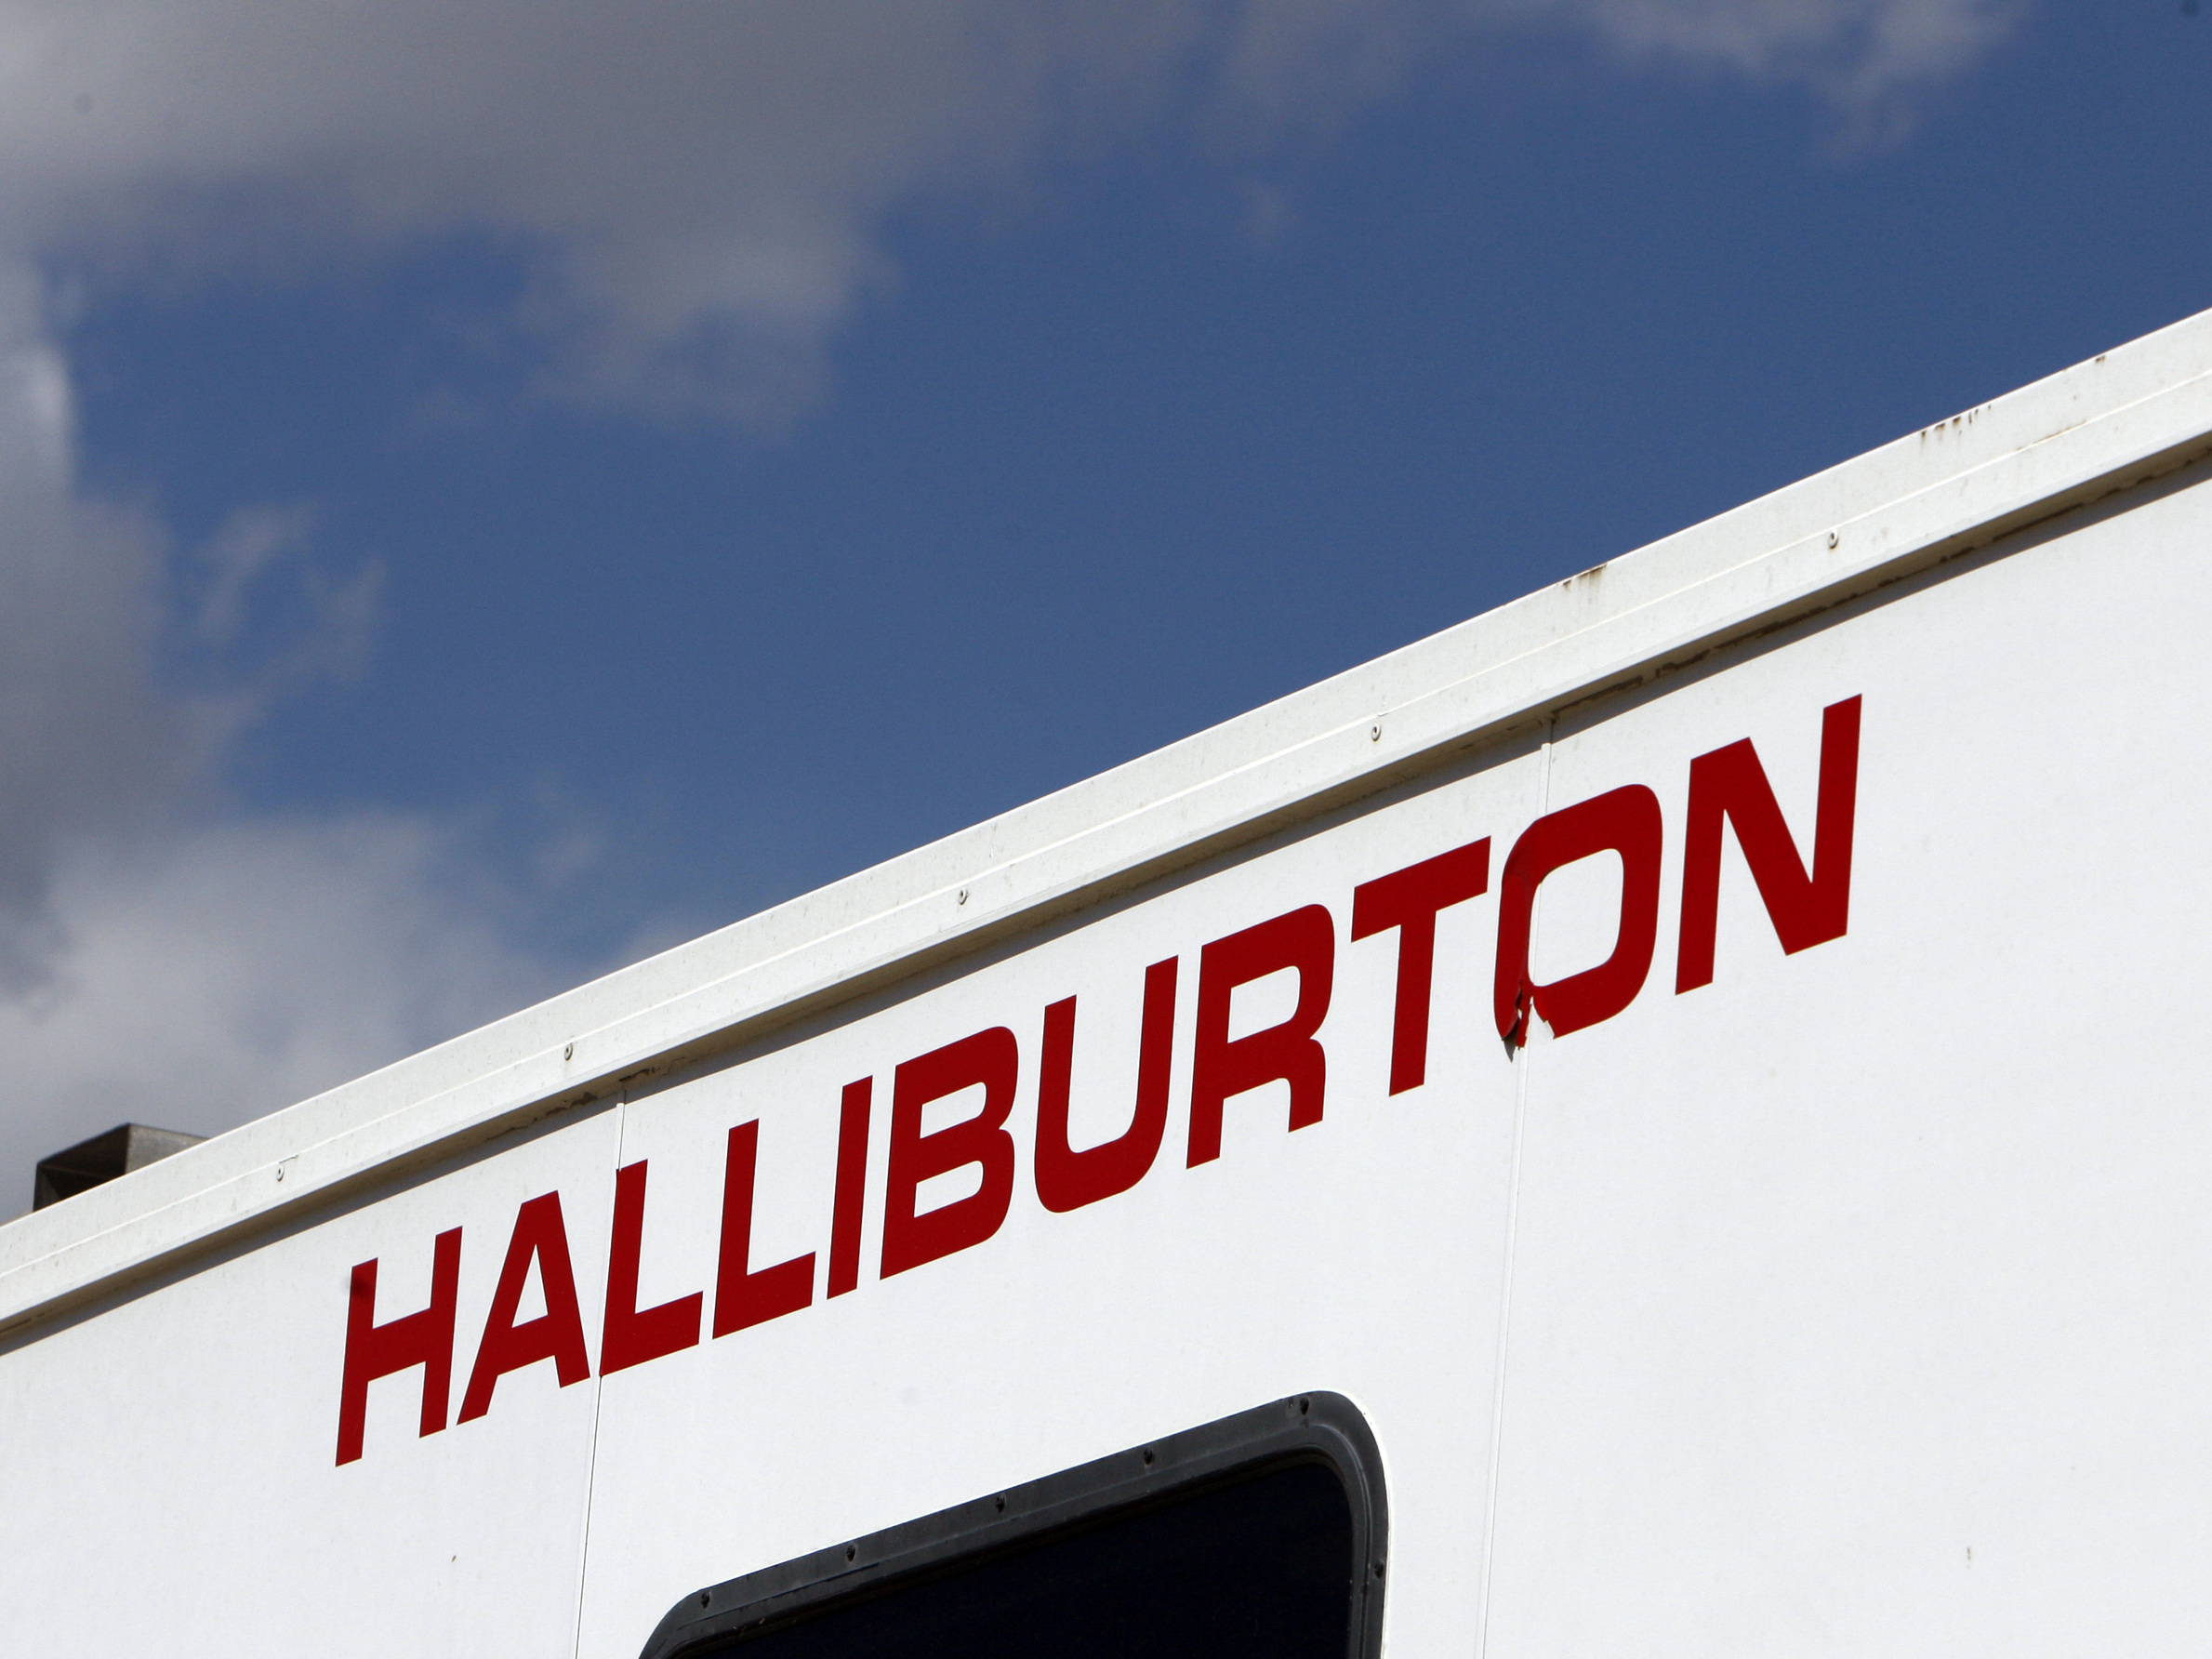 In this April 15, 2009 file photo, the Halliburton sign adorns the side of a machine being used by the company at a site for natural-gas producer Williams in Rulison, Colo.